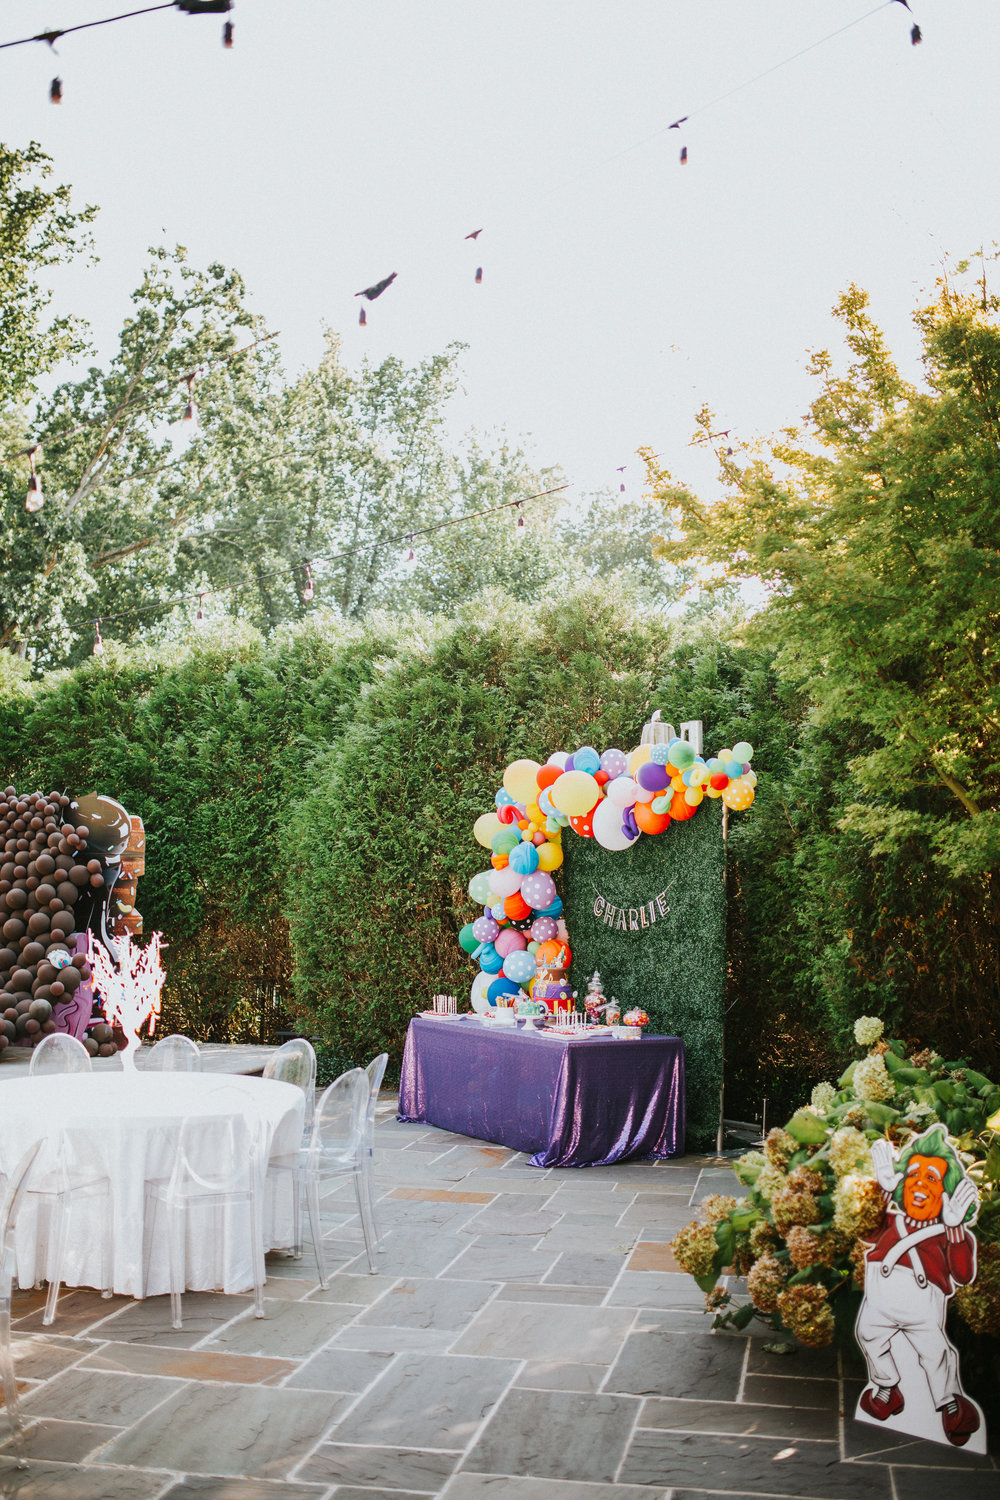 Willy Wonka Themed Birthday Party - Scarlet Plan & Design Atlanta Party Event Planners & Designers (55).jpg